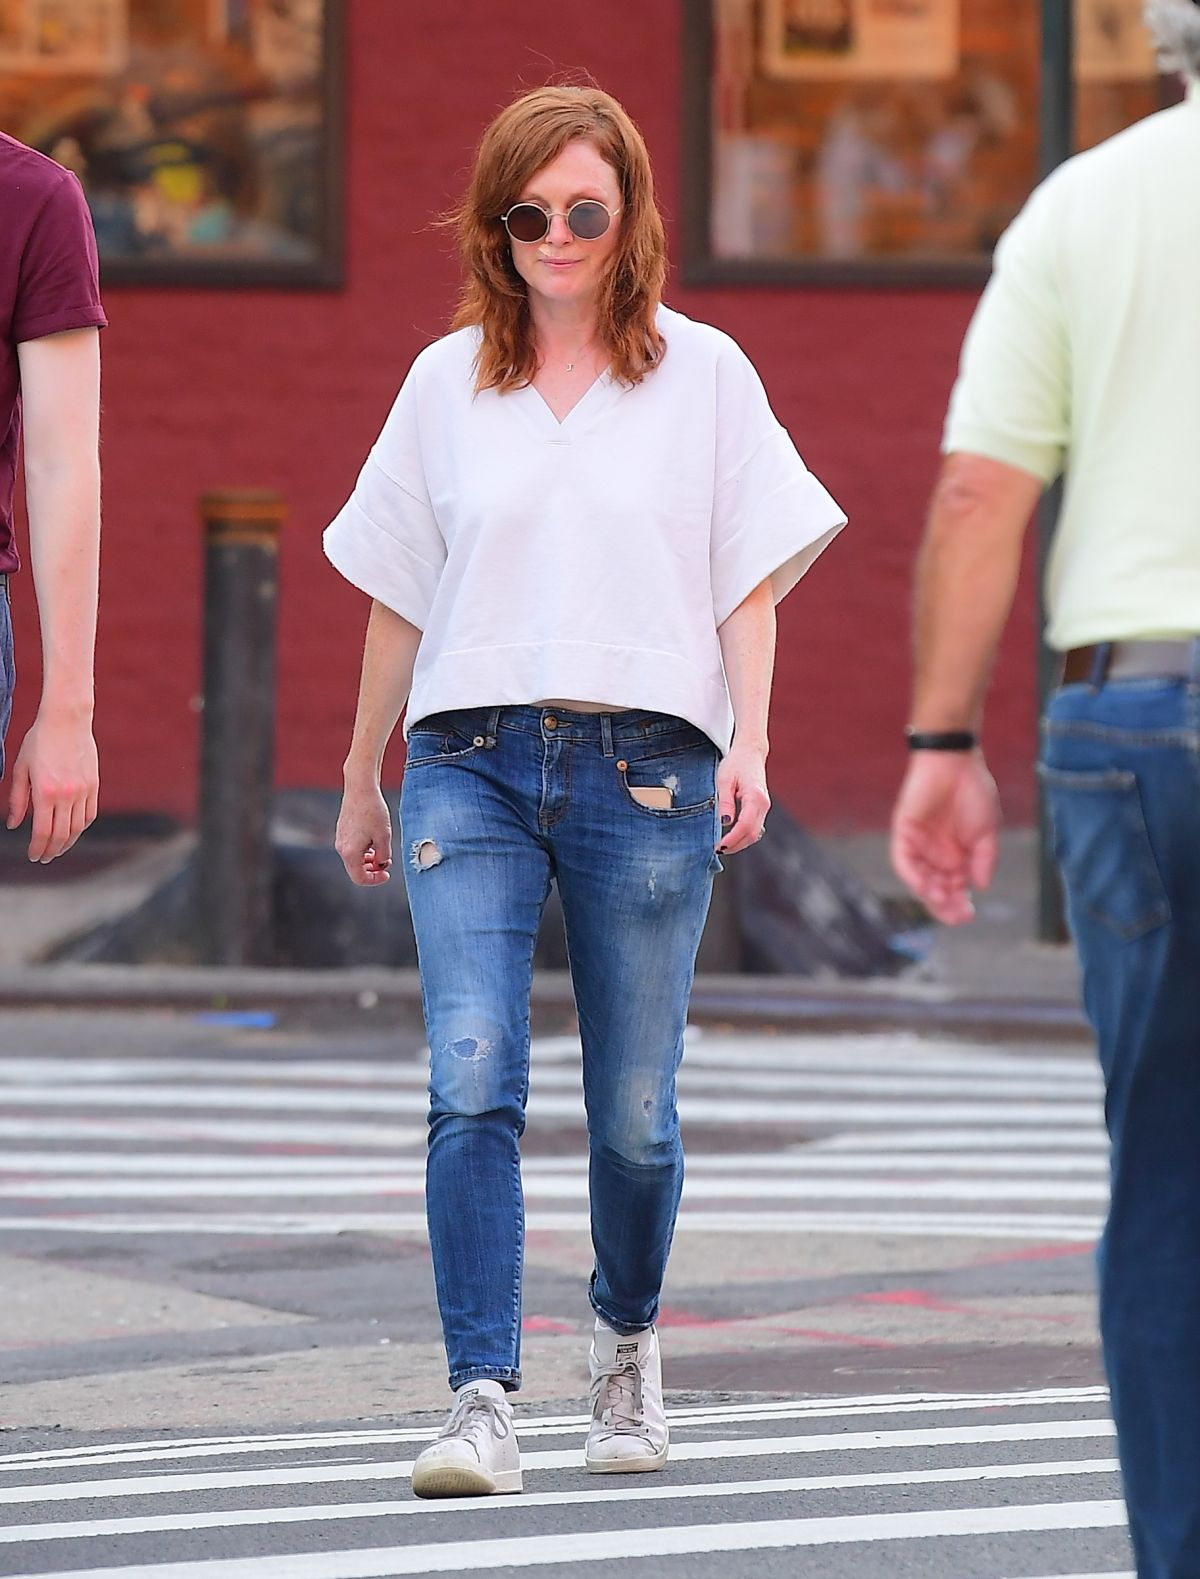 Julianne Moore and Her Daughter Liv Freundlich Out in New York, 06.23.2019 4